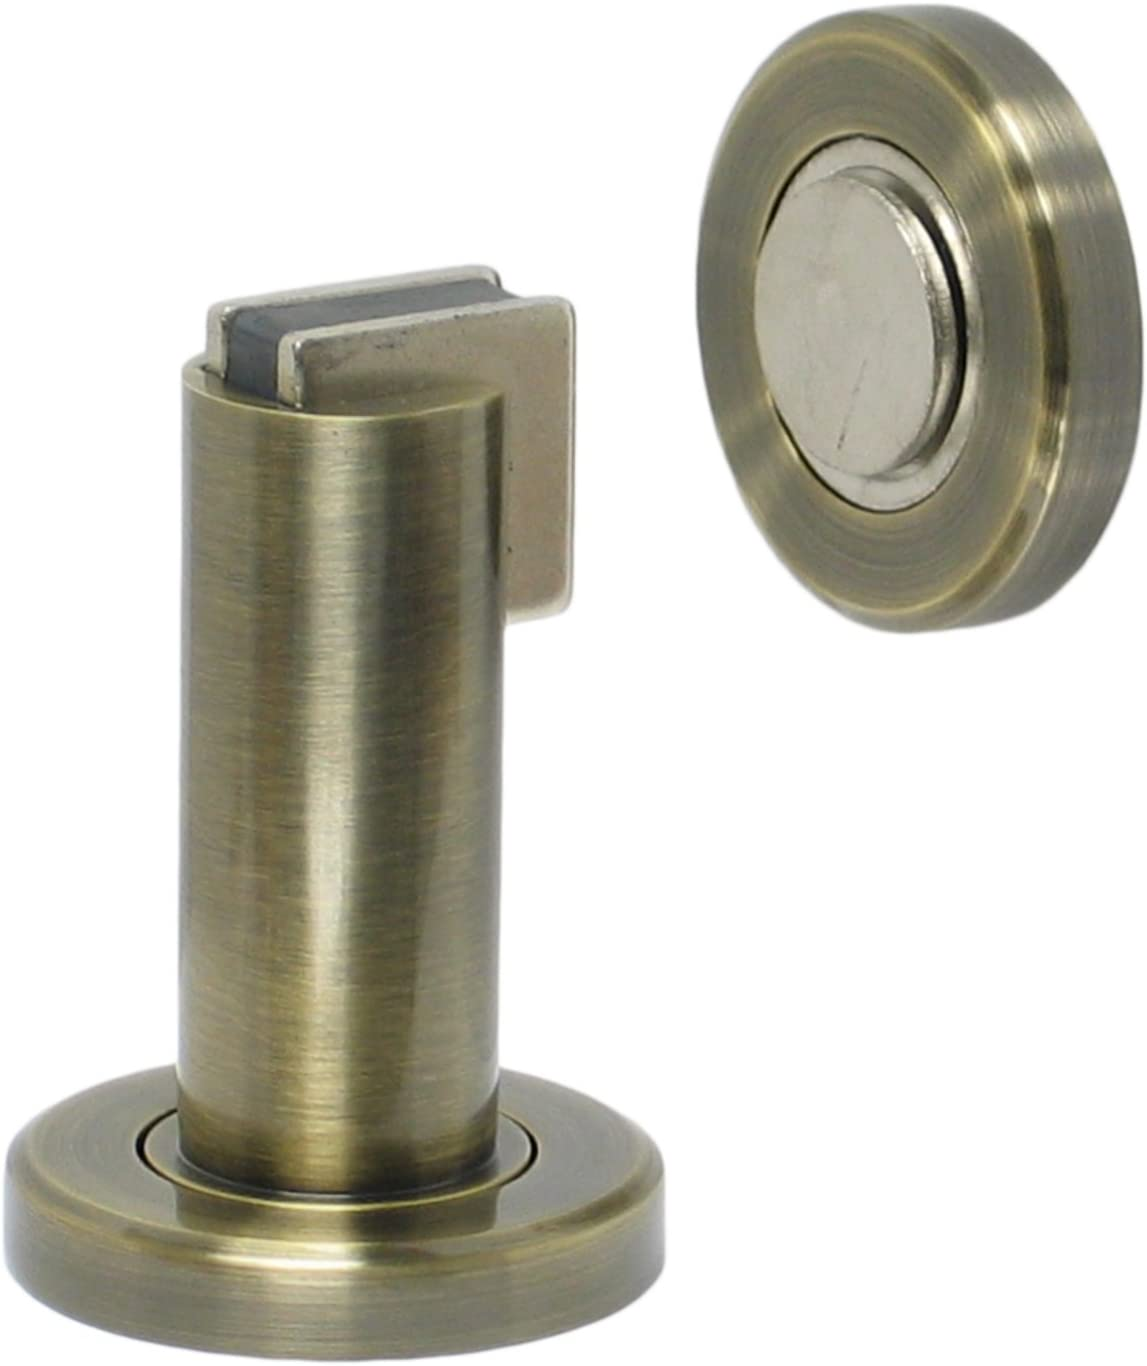 Holder and Magnetic Catch FPL Modern Door Stop Oil Rubbed Bronze